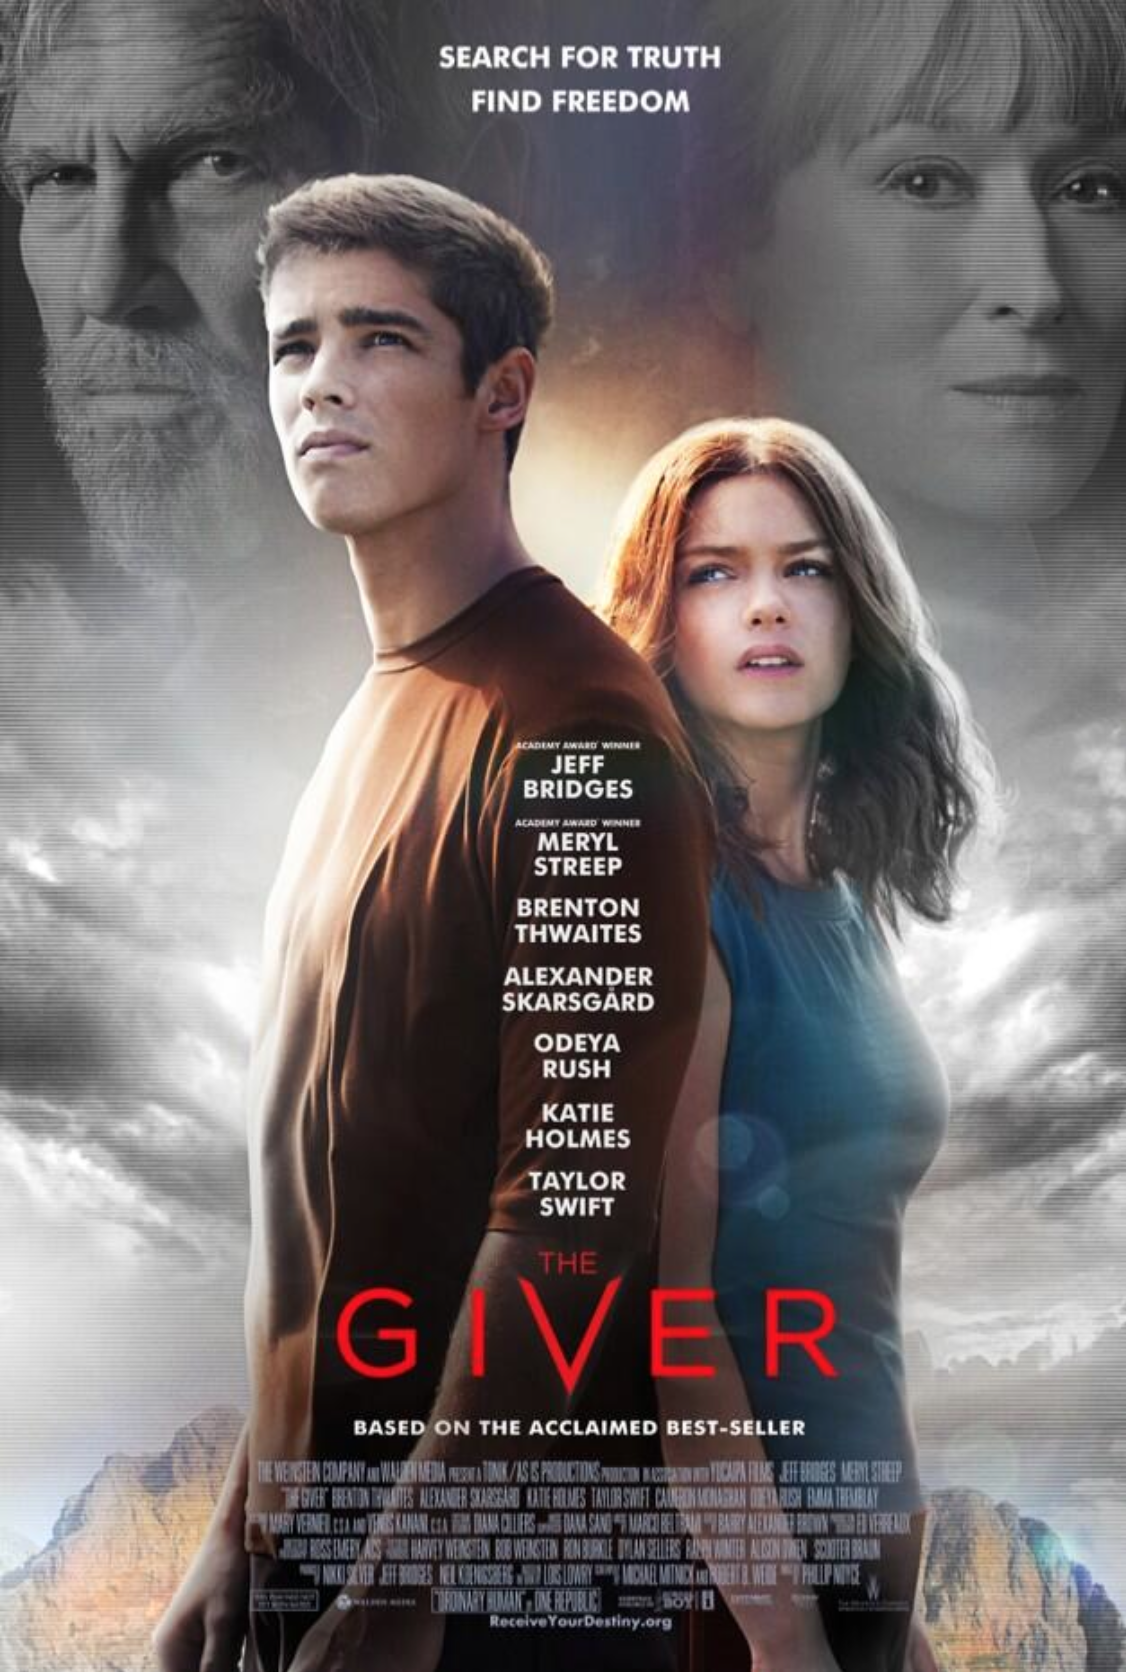 the giver poster.png